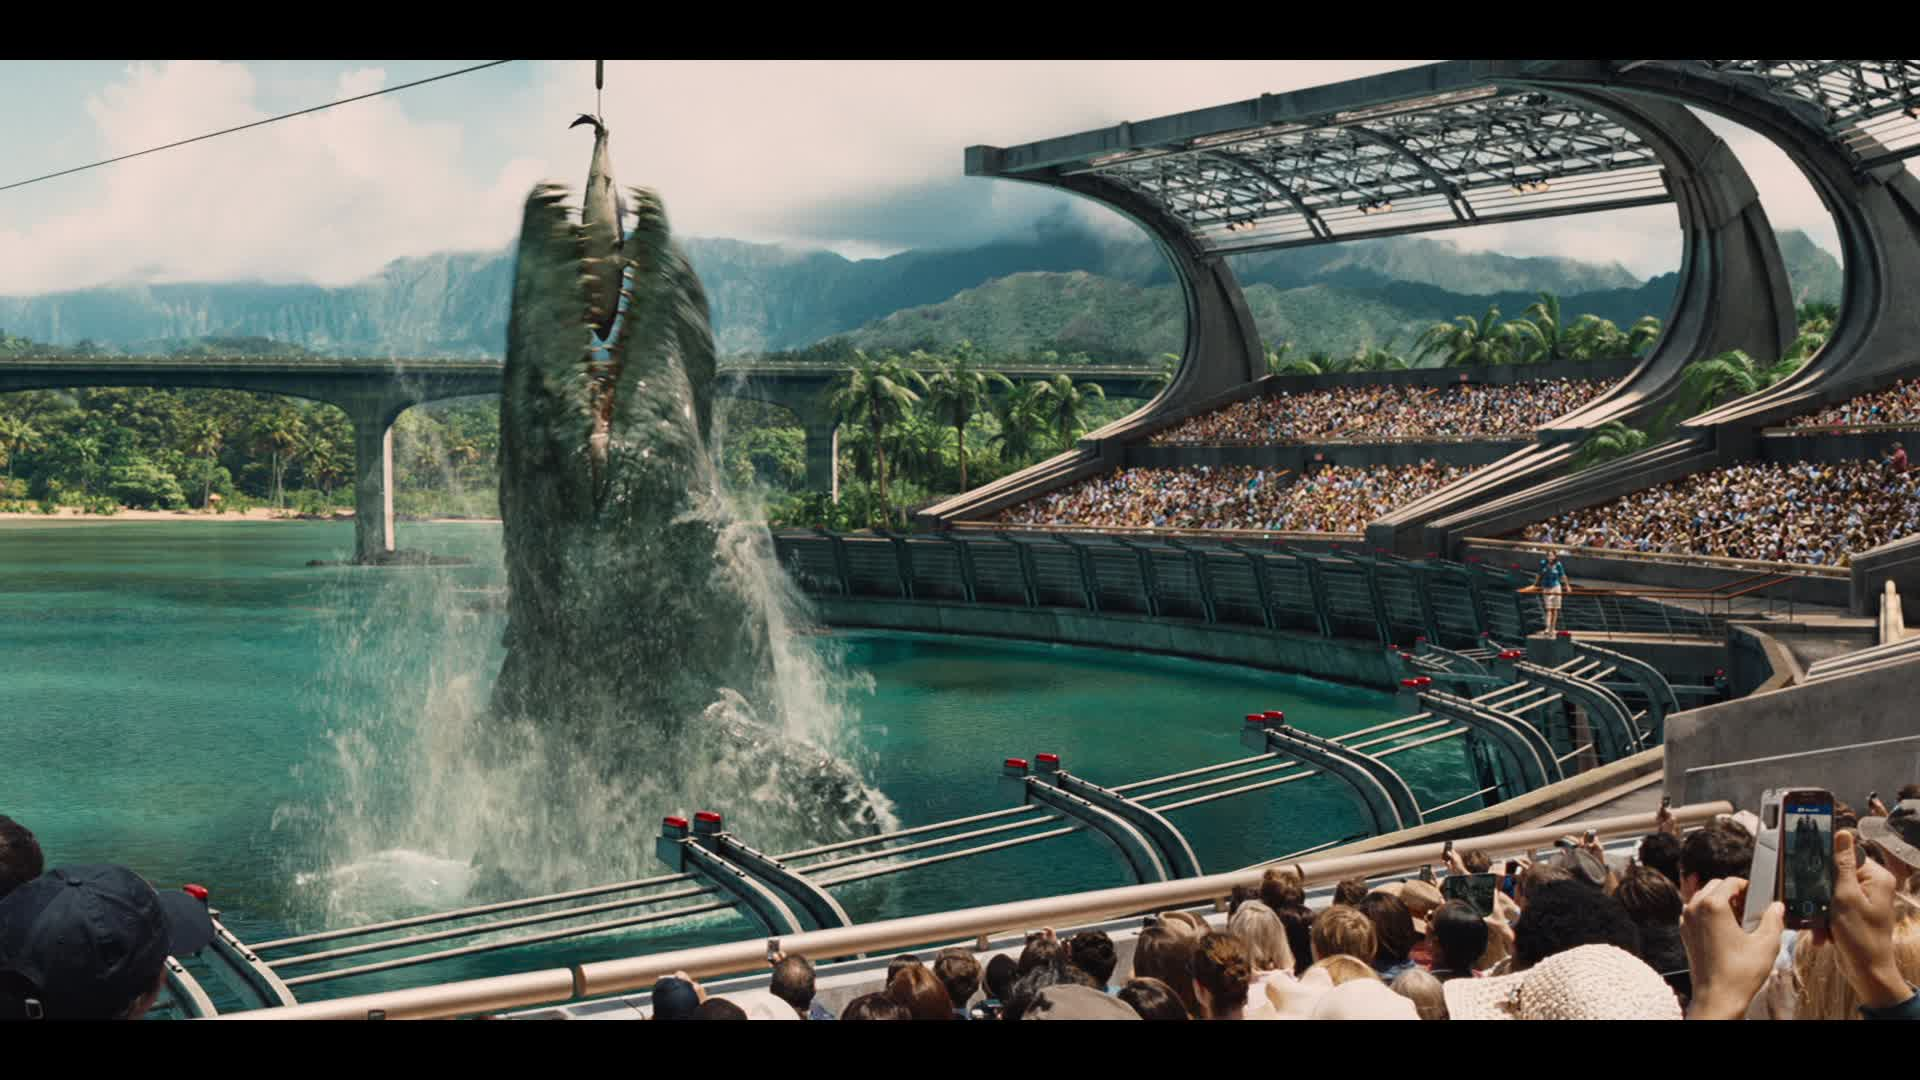 Jurassic_world_screenshot_2015.jpg